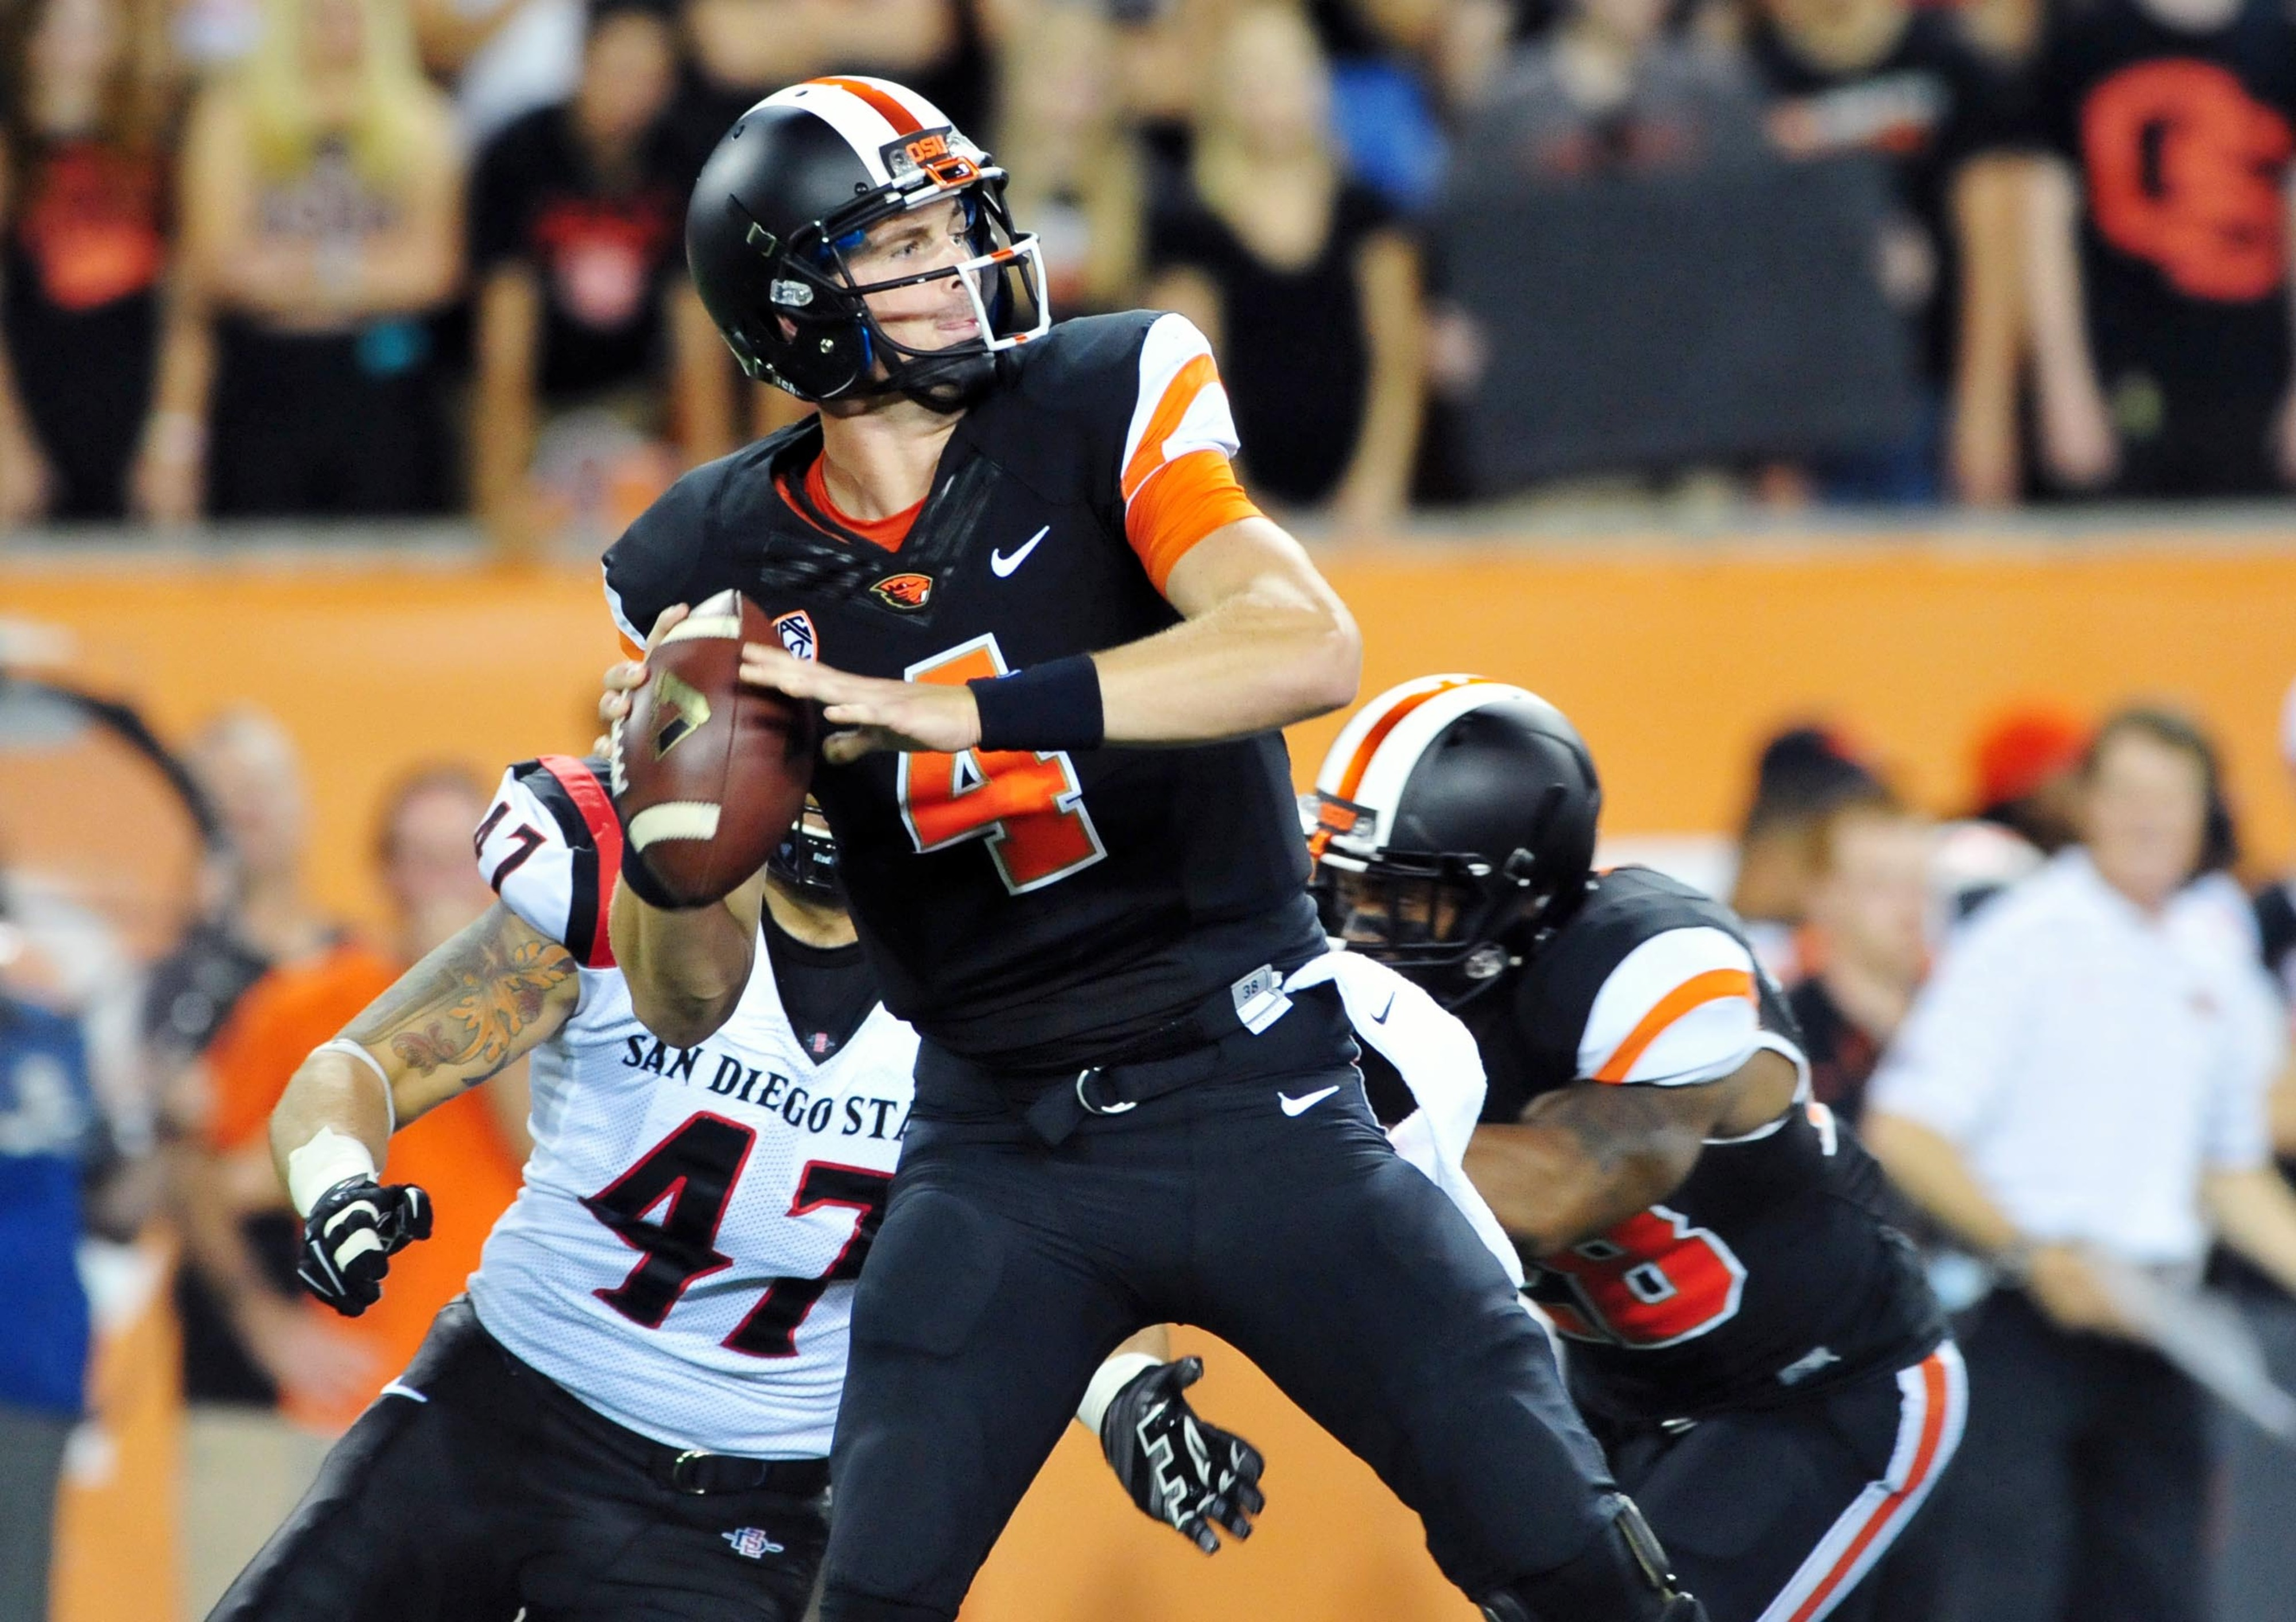 Oregon State quarterback Sean Mannion gets a chance to climb closer to the conference passing record against USC this weekend.